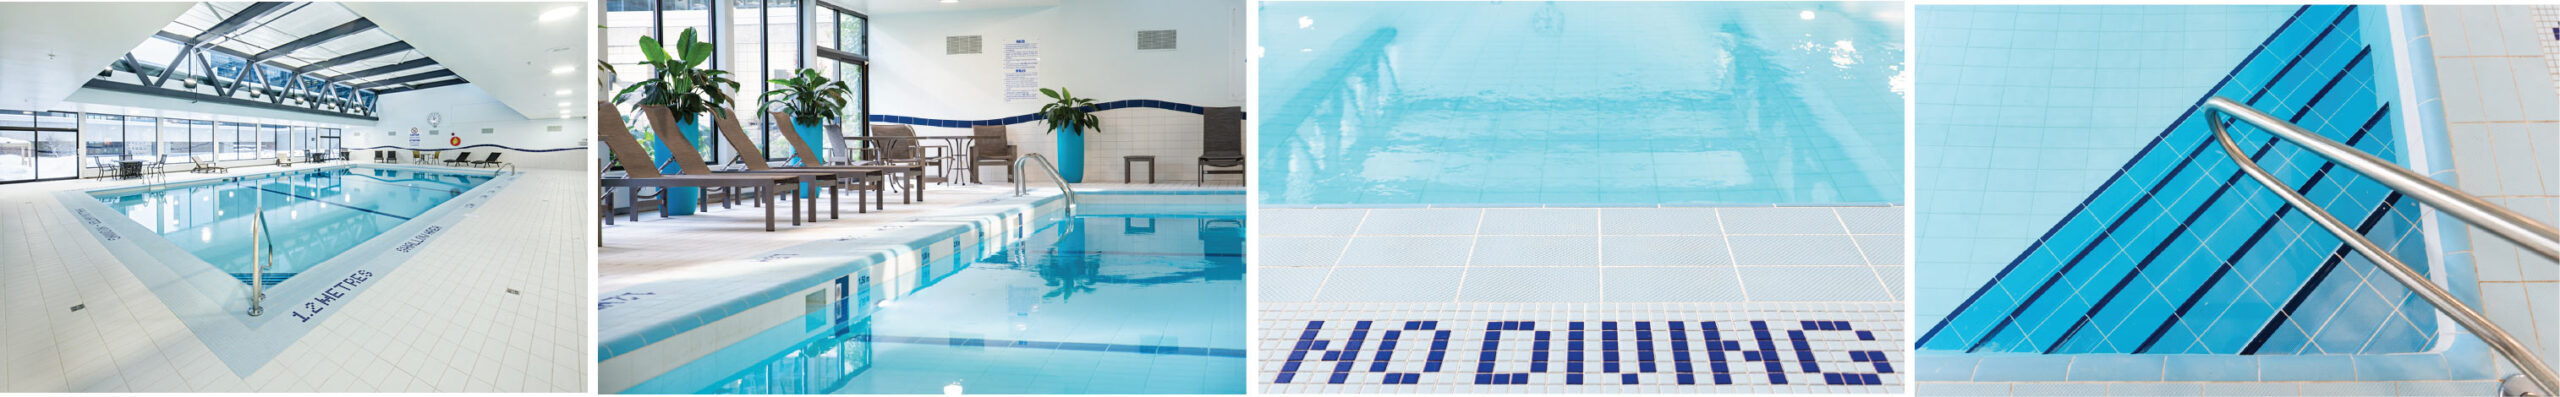 ttmac-hardsurface-awards-delta-pool-tiles